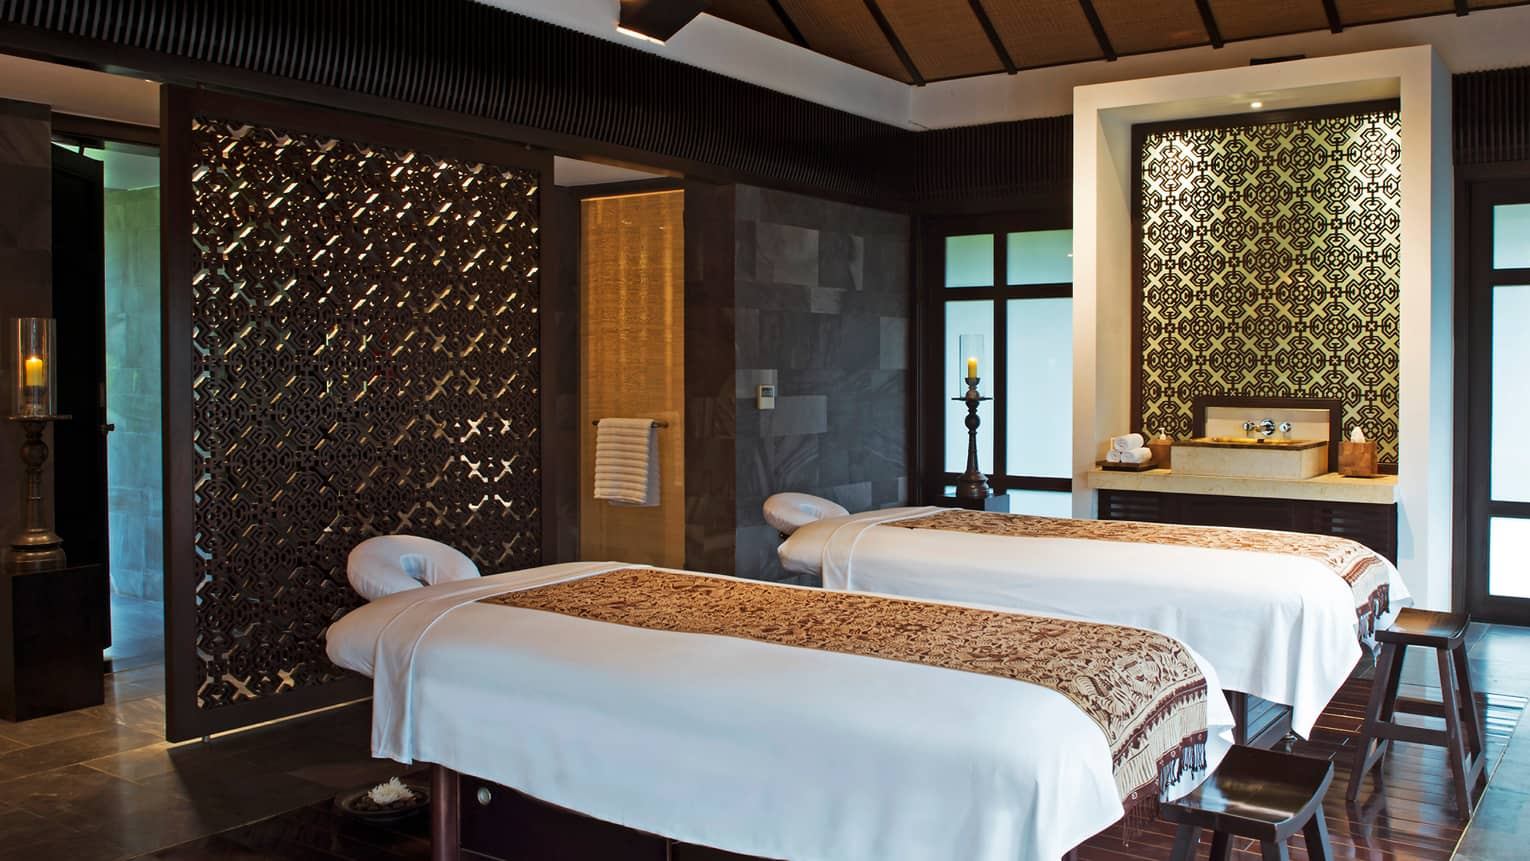 Couples massage tables side-by-side in spa treatment suite with decorative walls